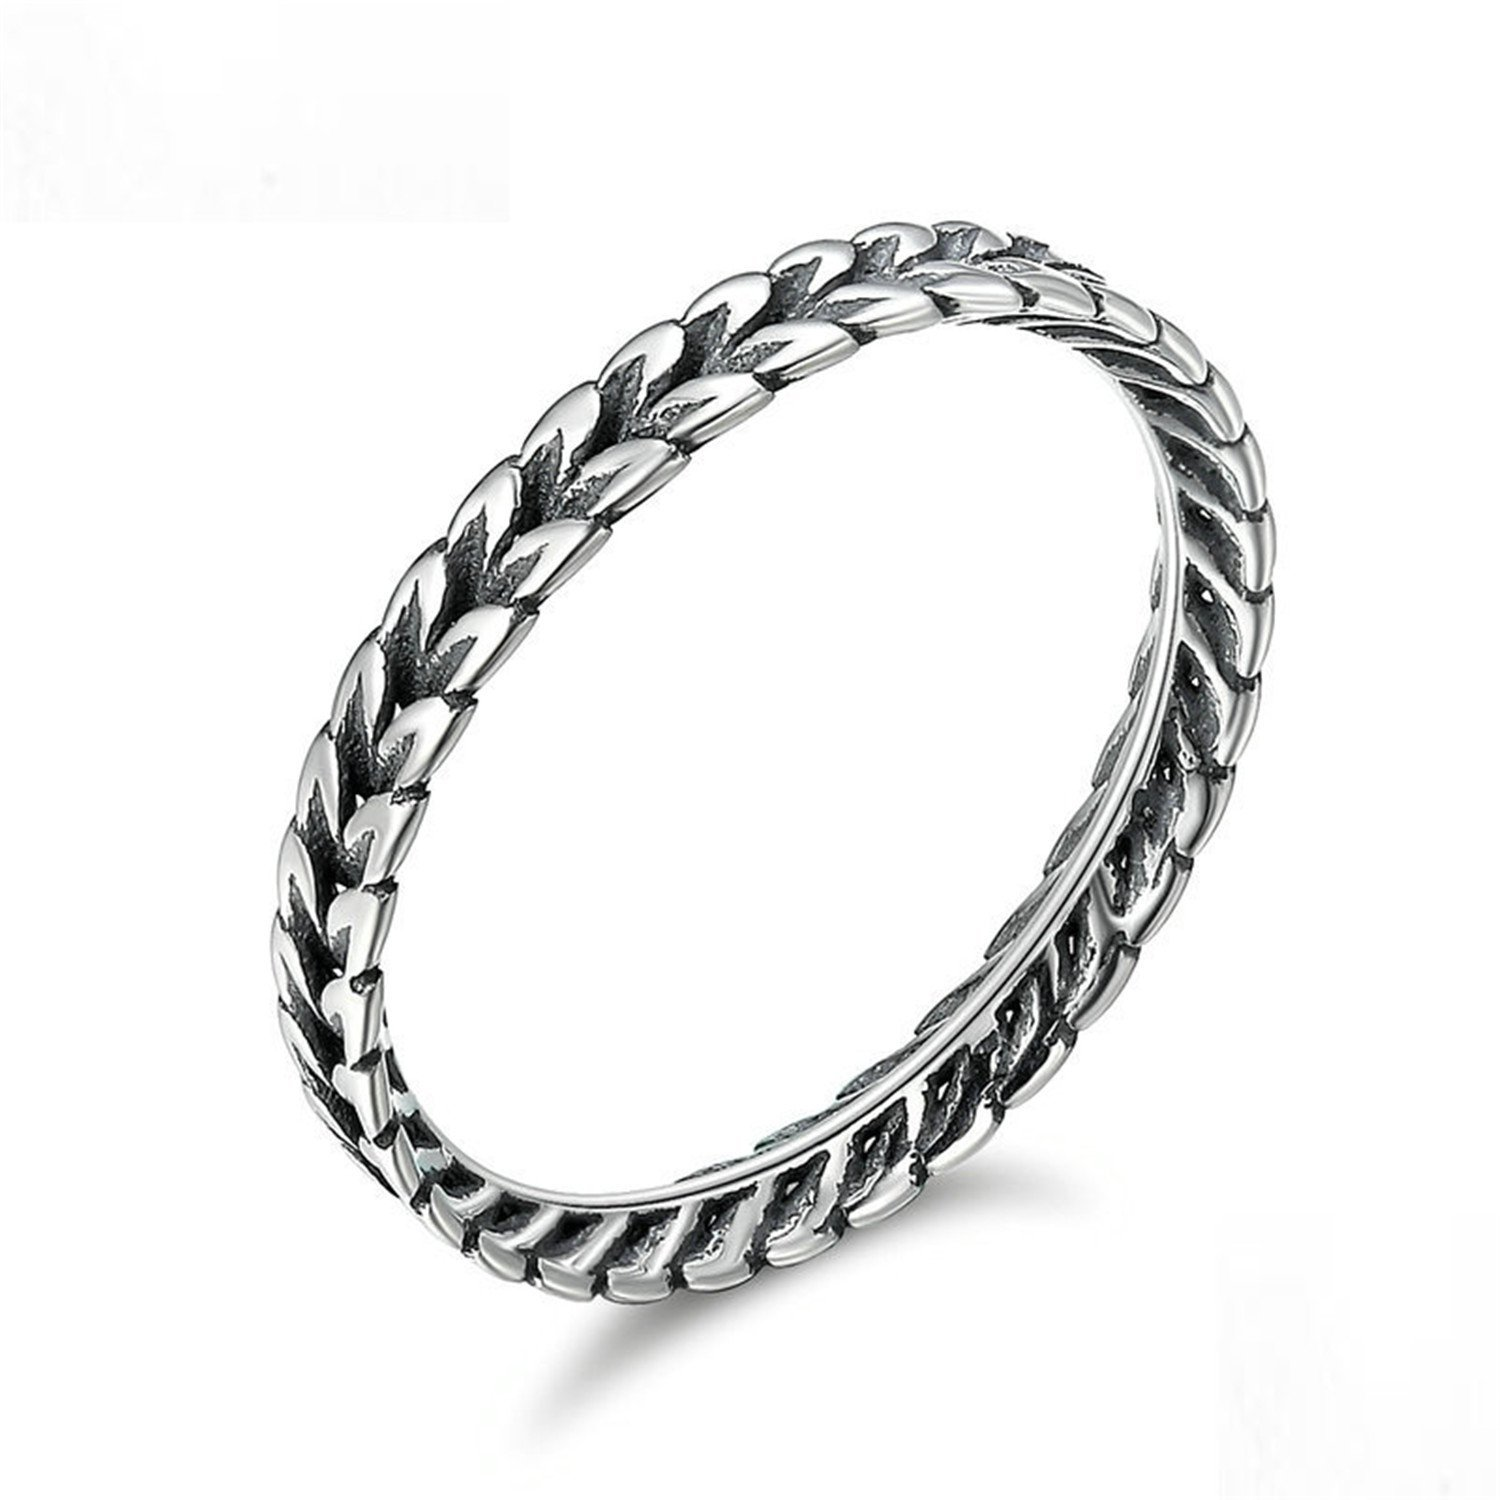 Baqijian Authentic Sterling Stackable Ring Wheat Shape Finger Ring Women Vintage Sterling Jewelry Scr139